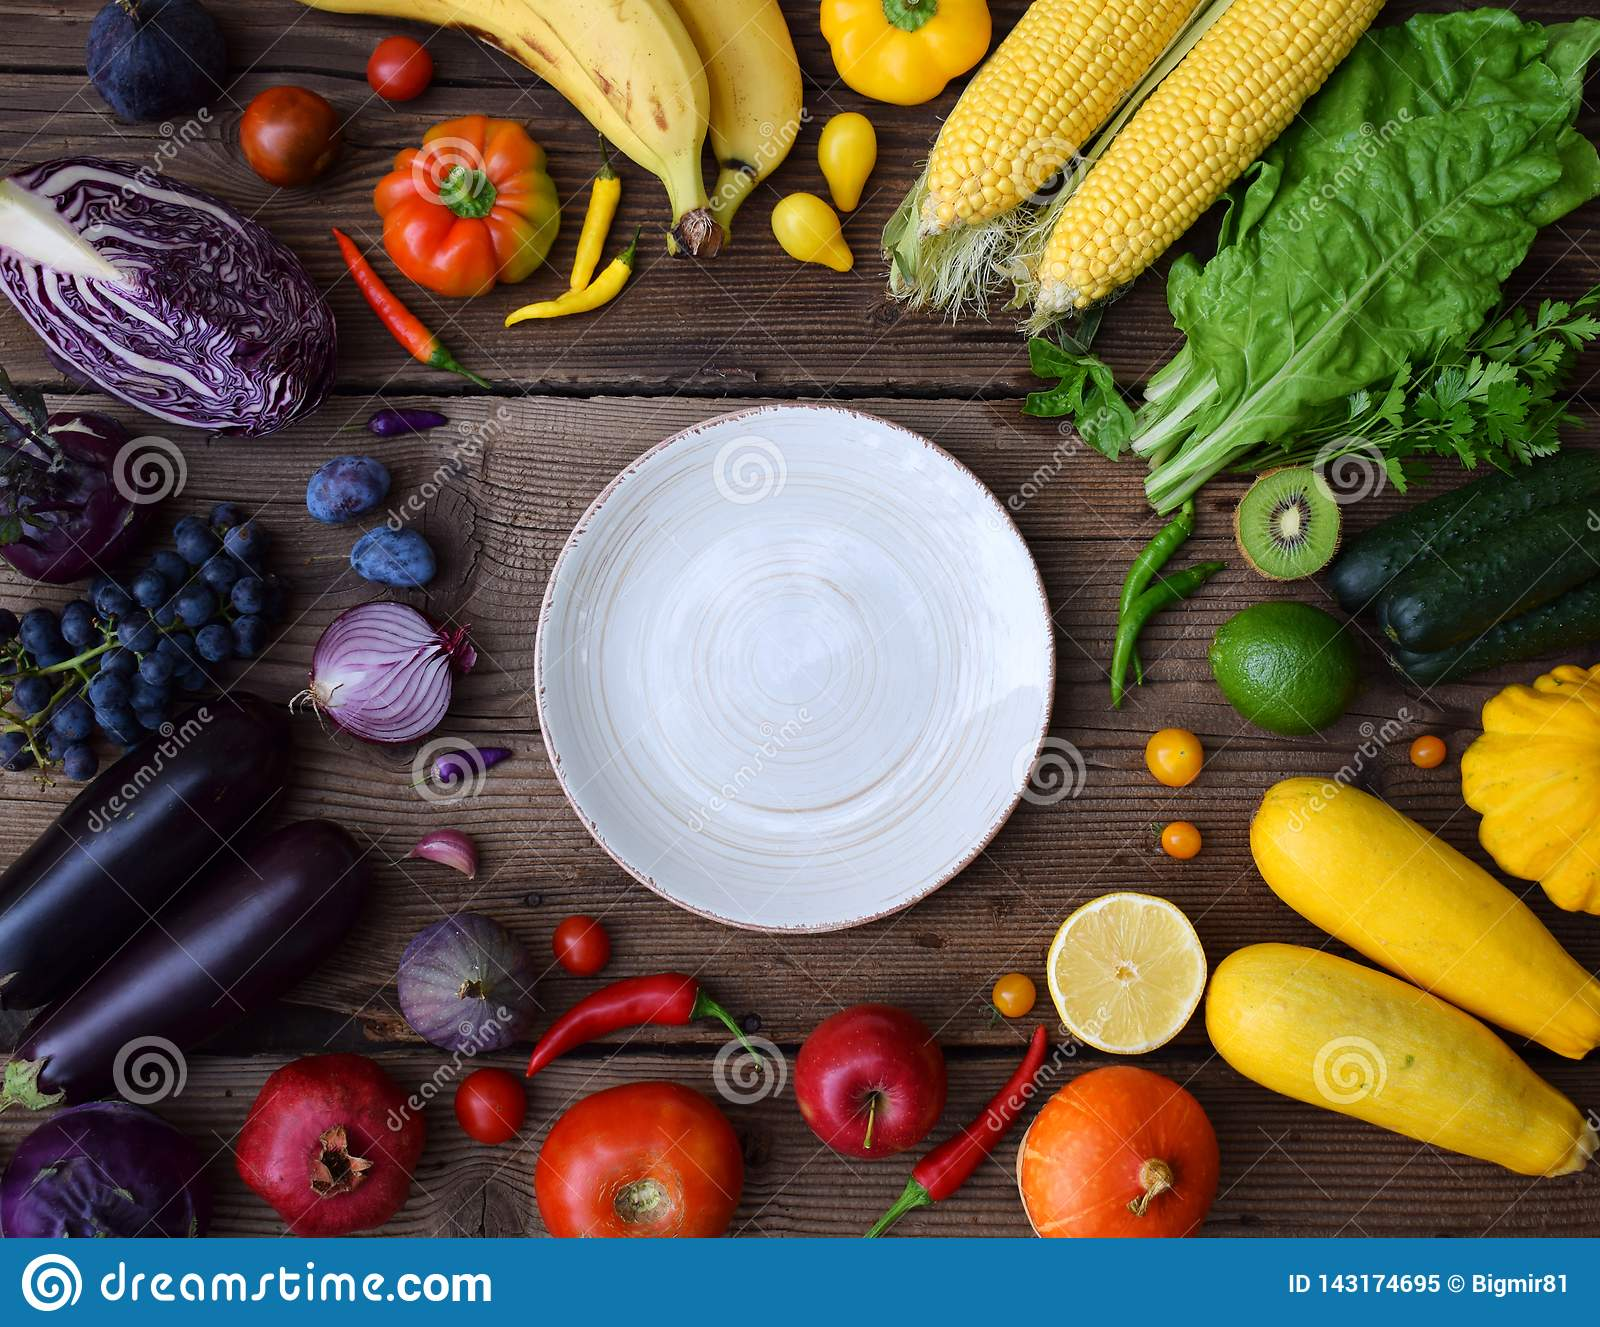 White, yellow, green, orange, red, purple fruits and vegetables on wooden background.  Healthy food. Multicolored raw food and